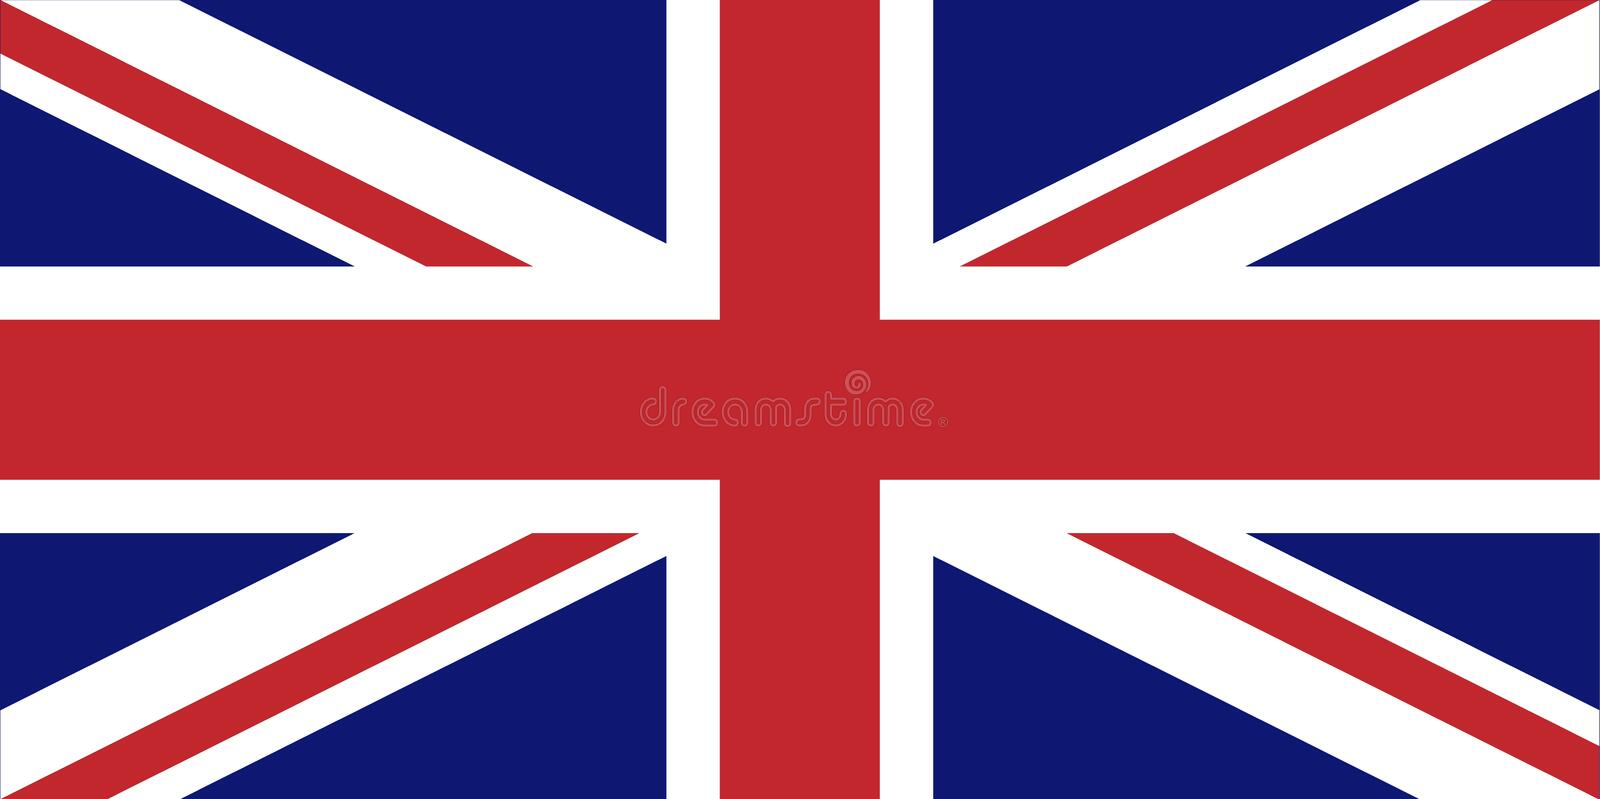 Drapeau britannique illustration stock